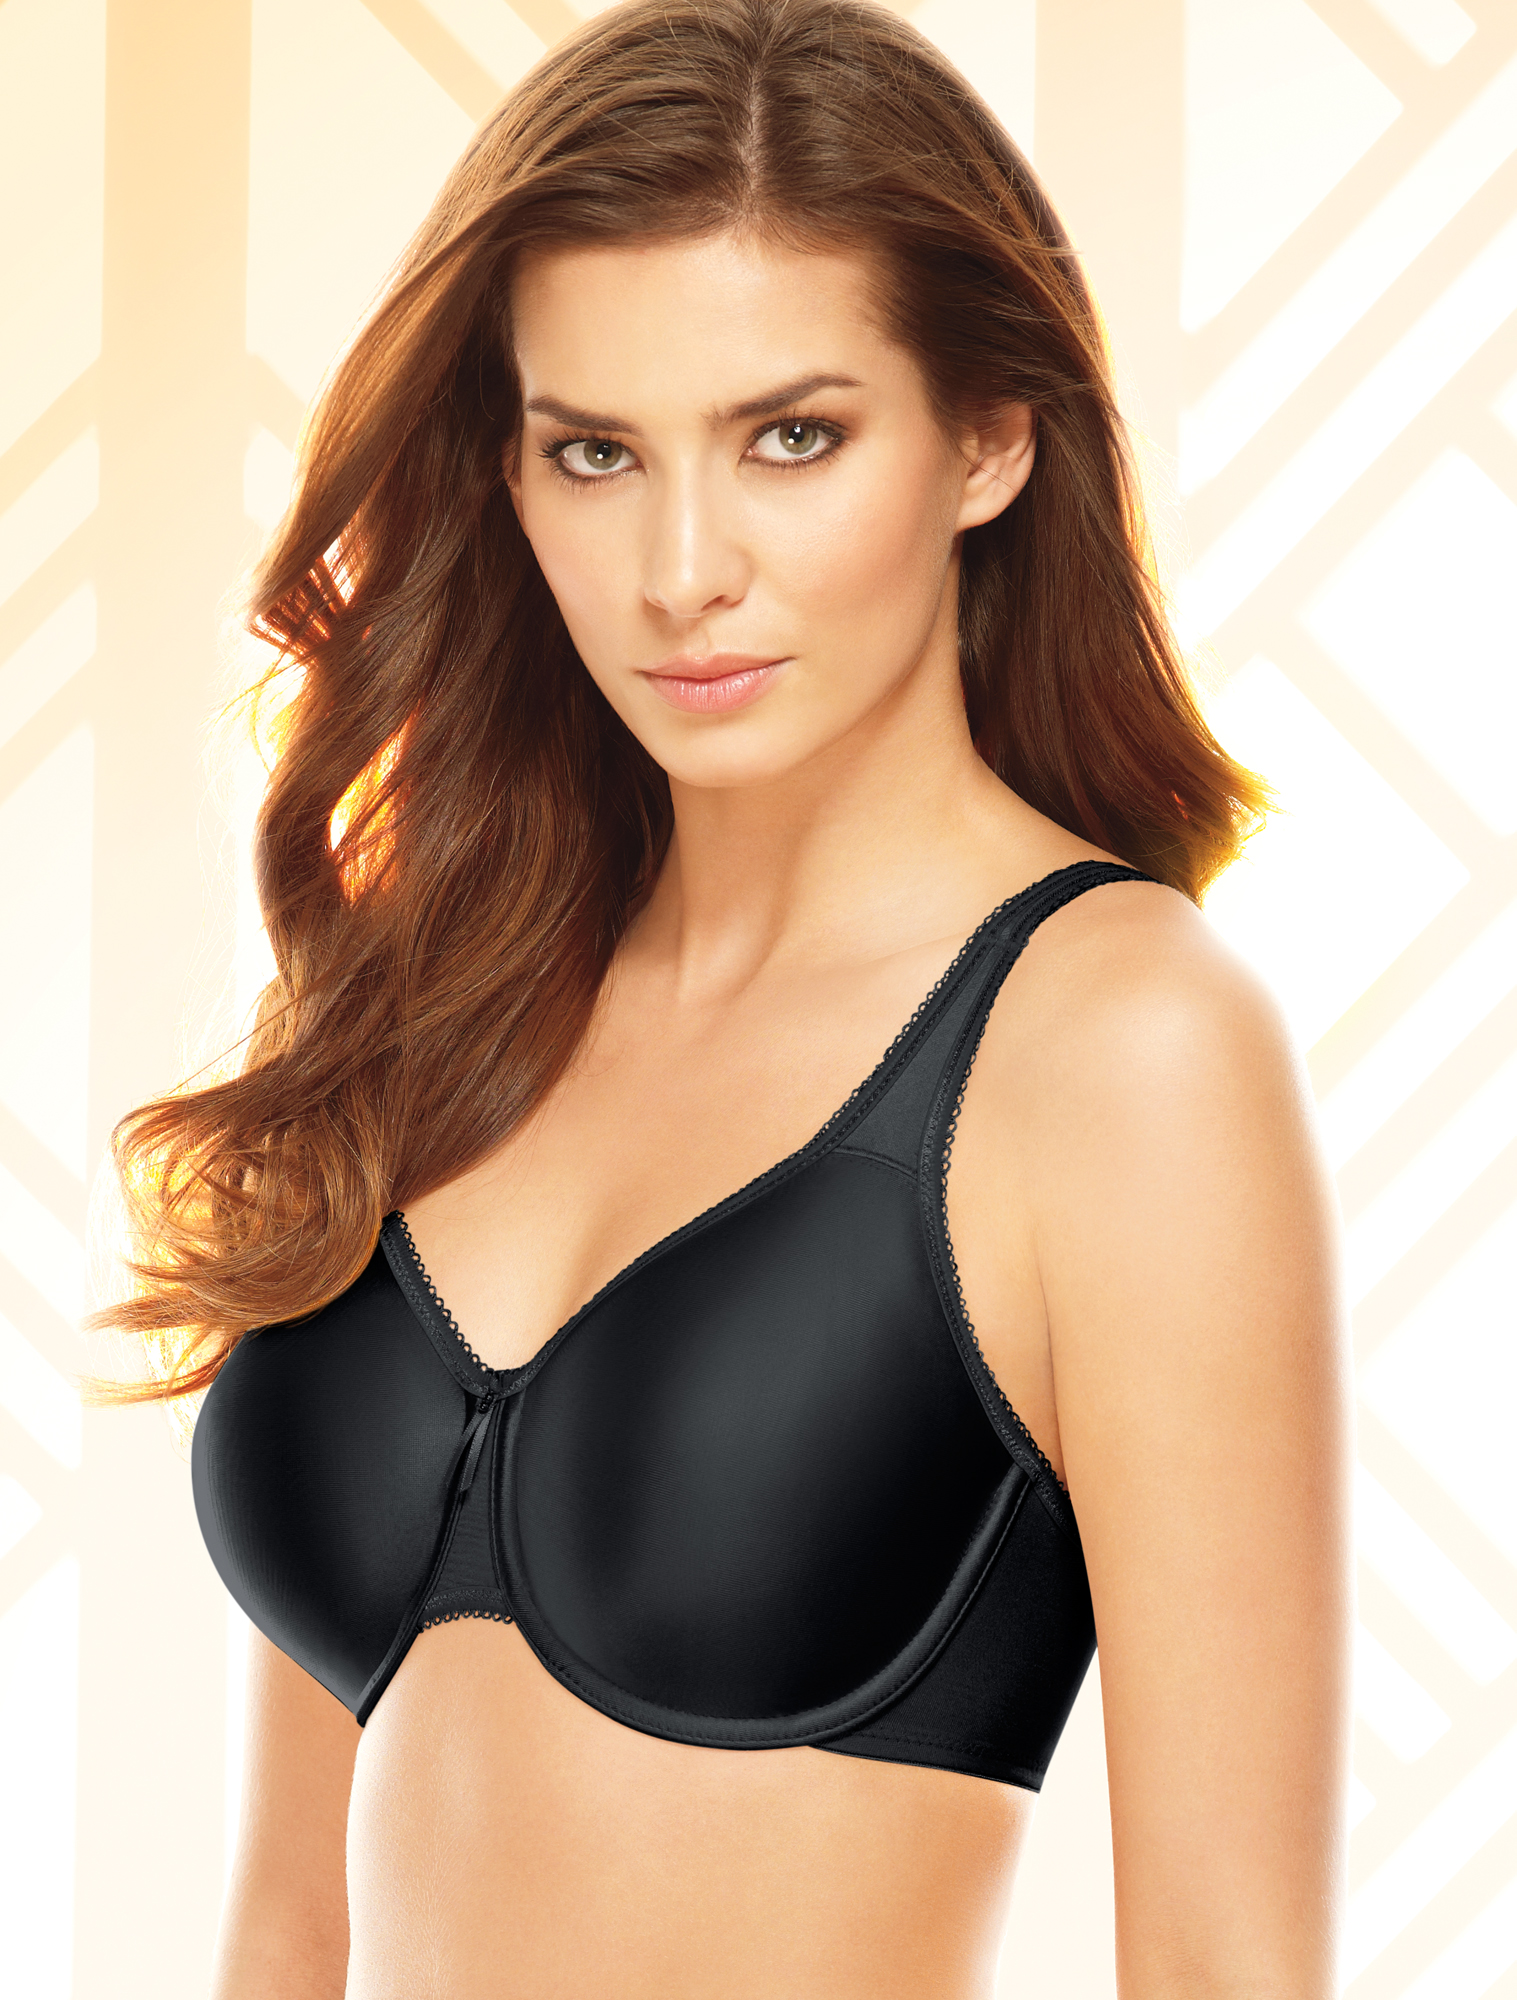 Basic Beauty Full Figure Bra by Wacoal